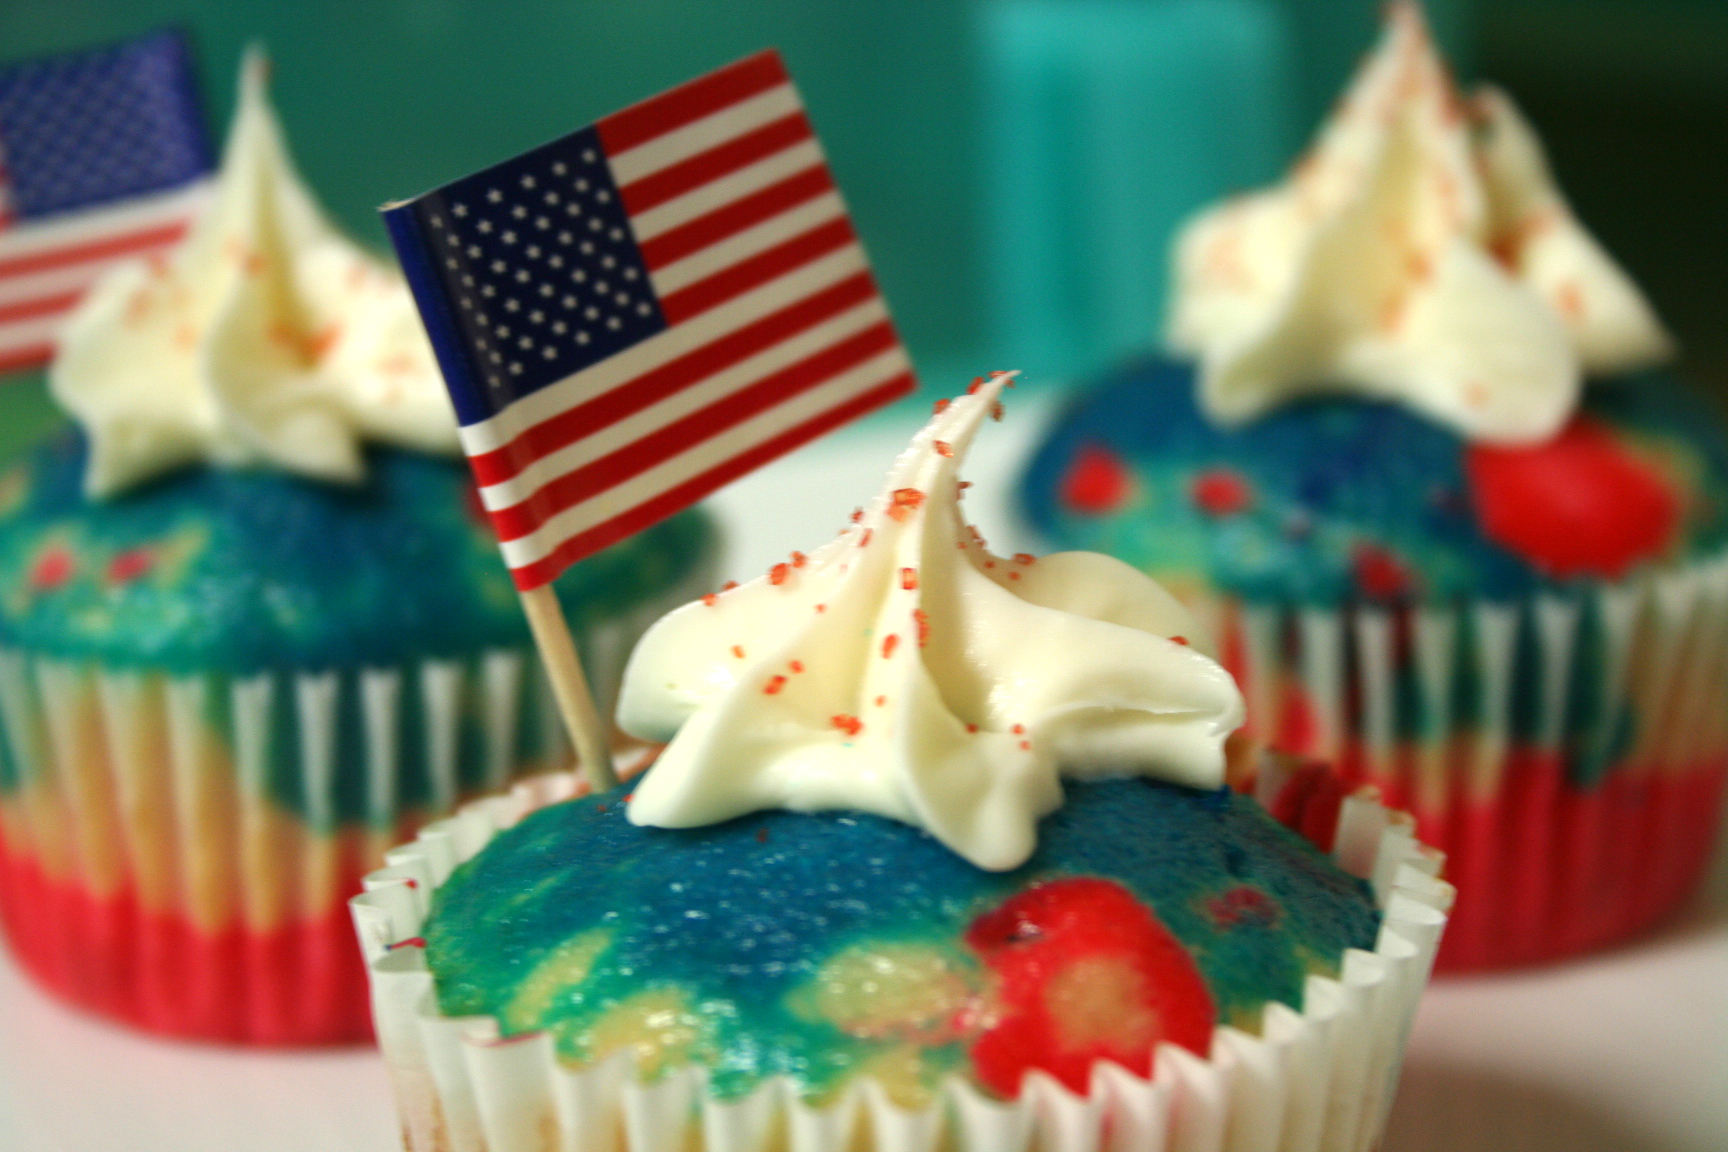 DIY ideas for the 4th of July.